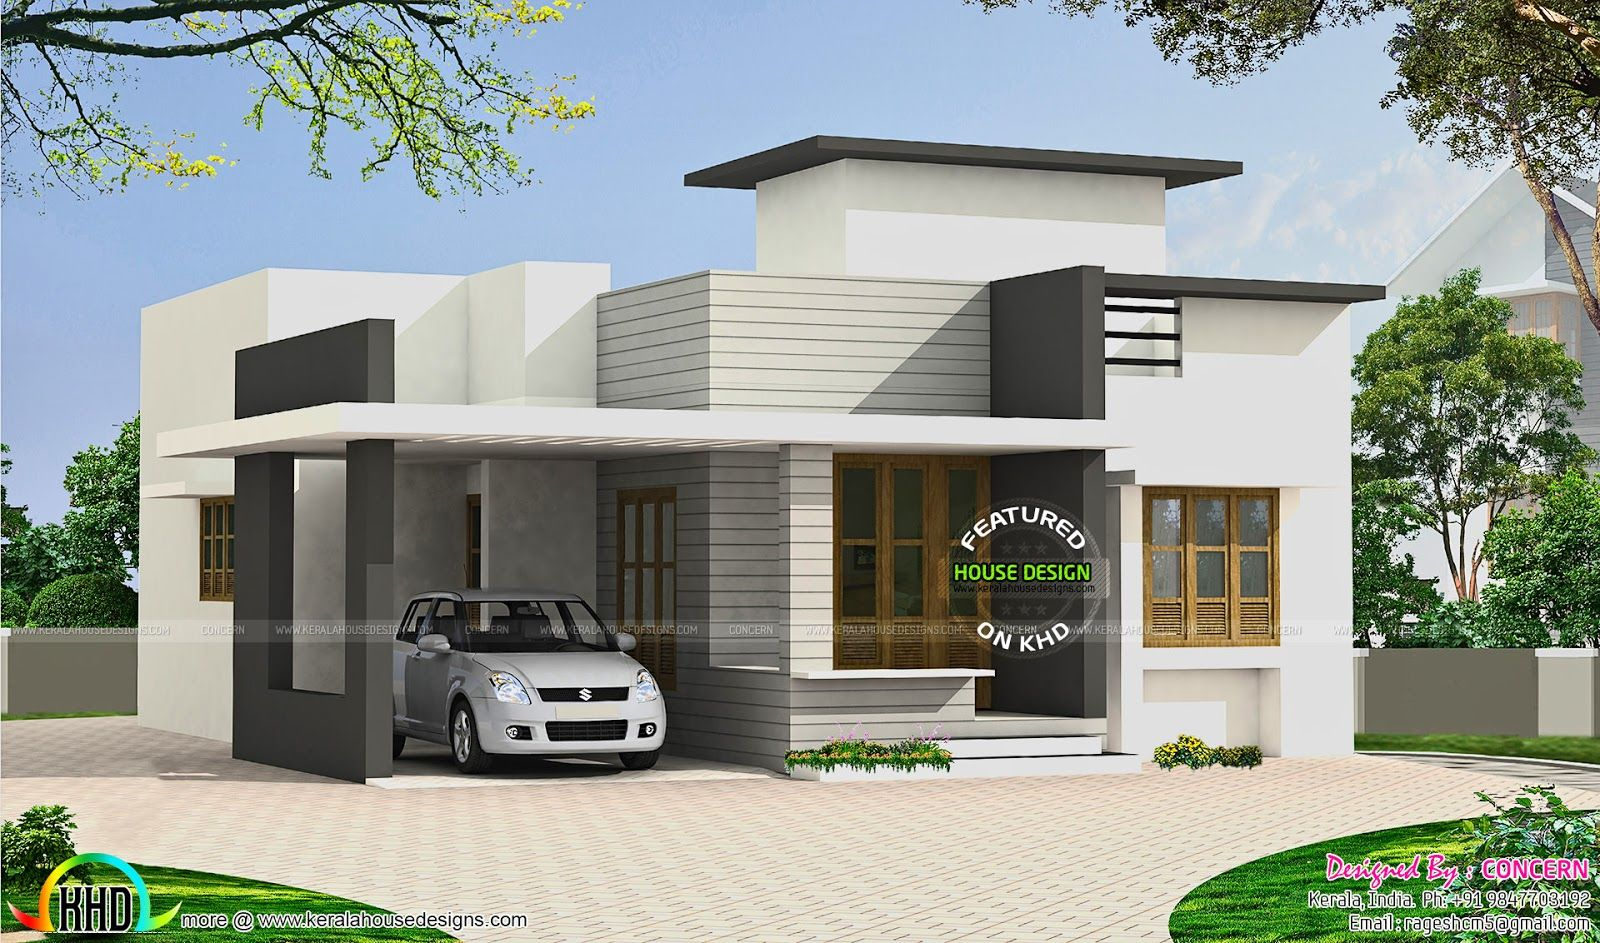 Single Floor House Front Elevation Designs In Kerala : Image result for parking roof design in single floor